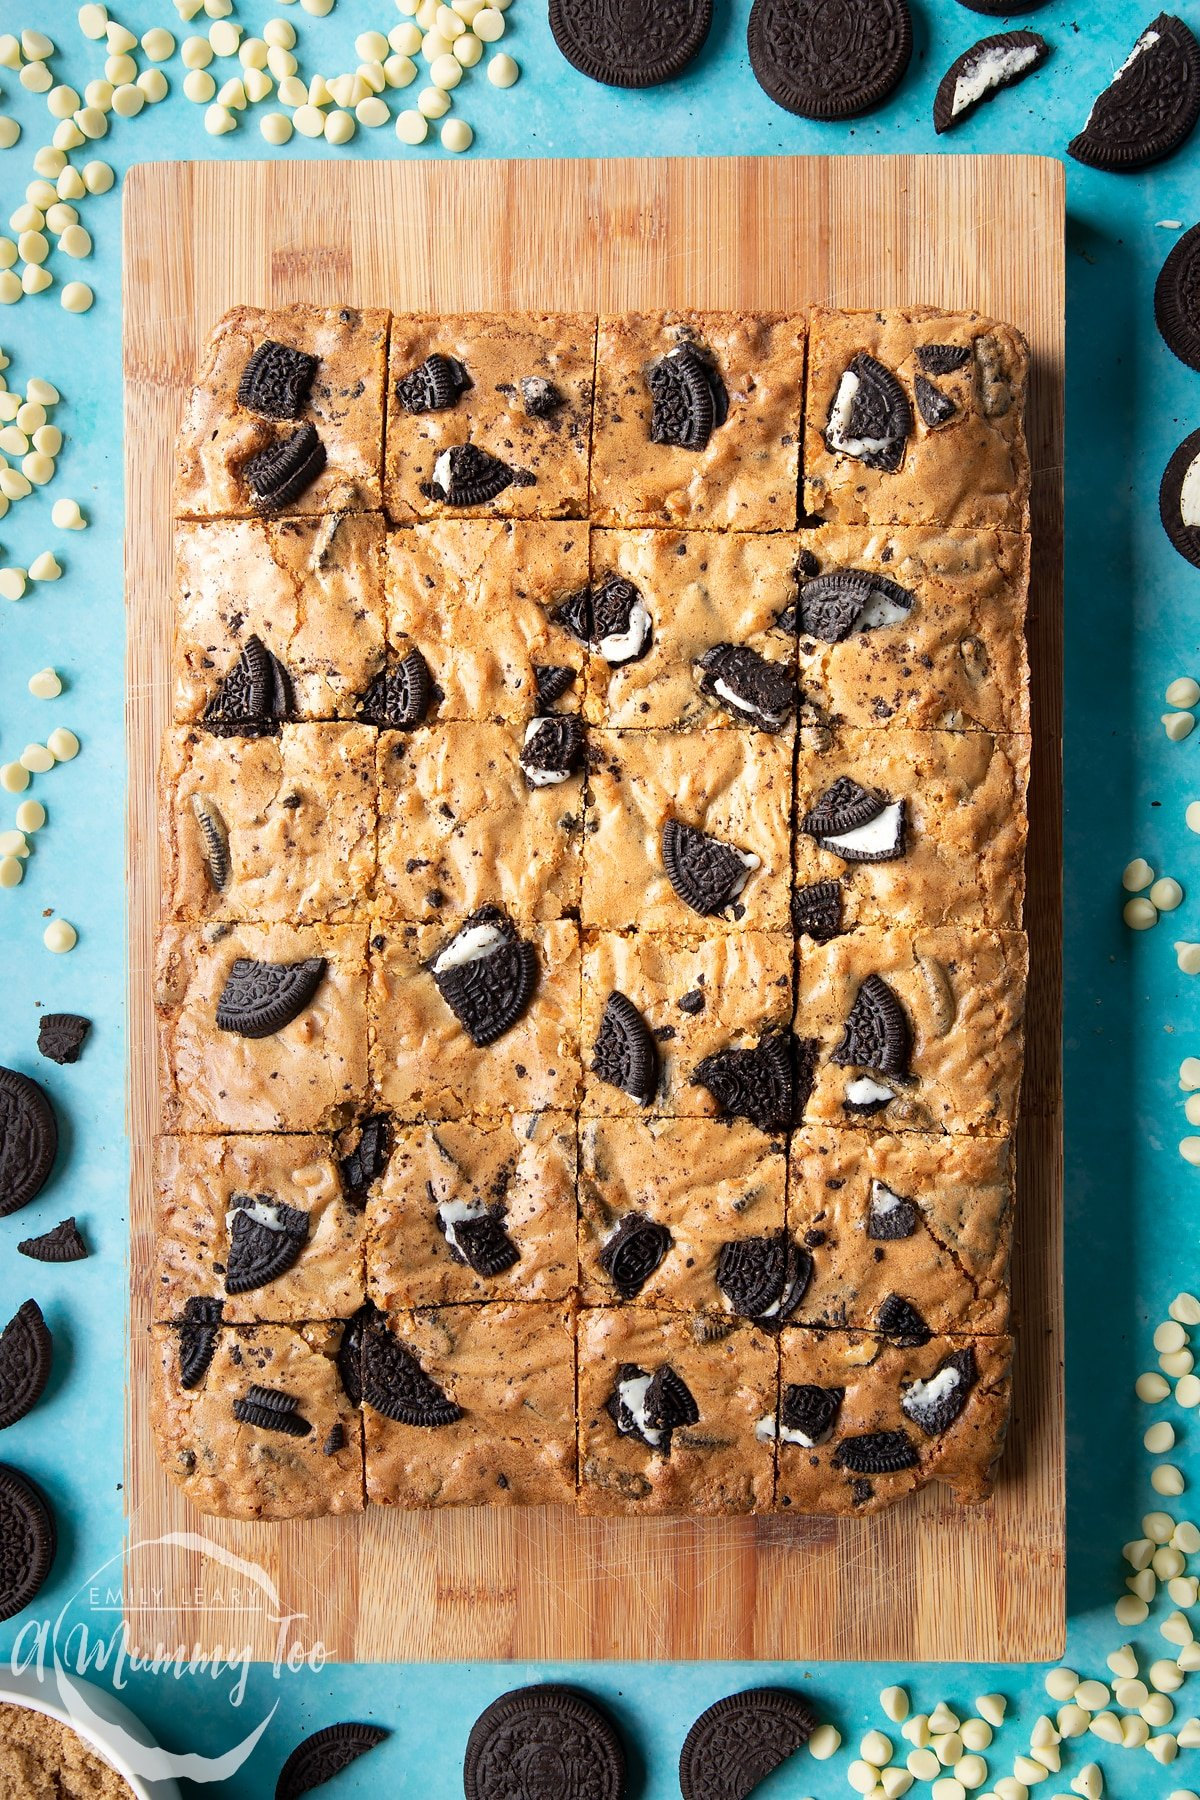 Overhead shot of Baked Oreo Blondie cut into squares on a wooden board